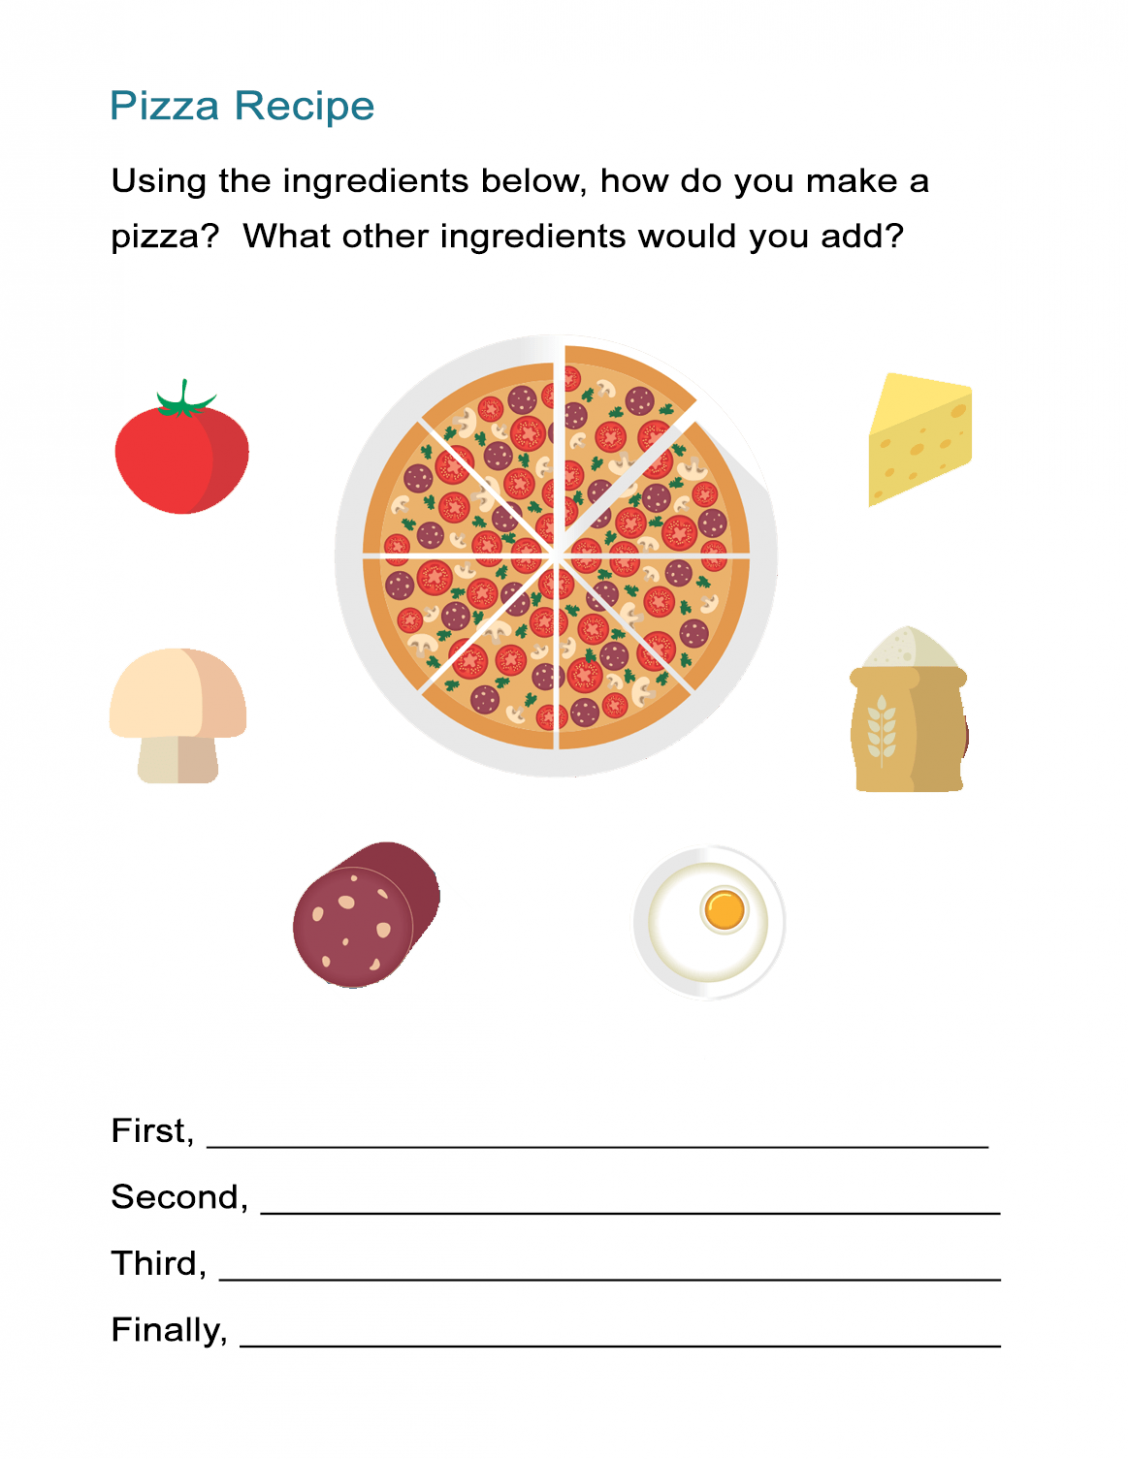 Transition Words Worksheet: The Pizza Recipe Cooking Instructions ..